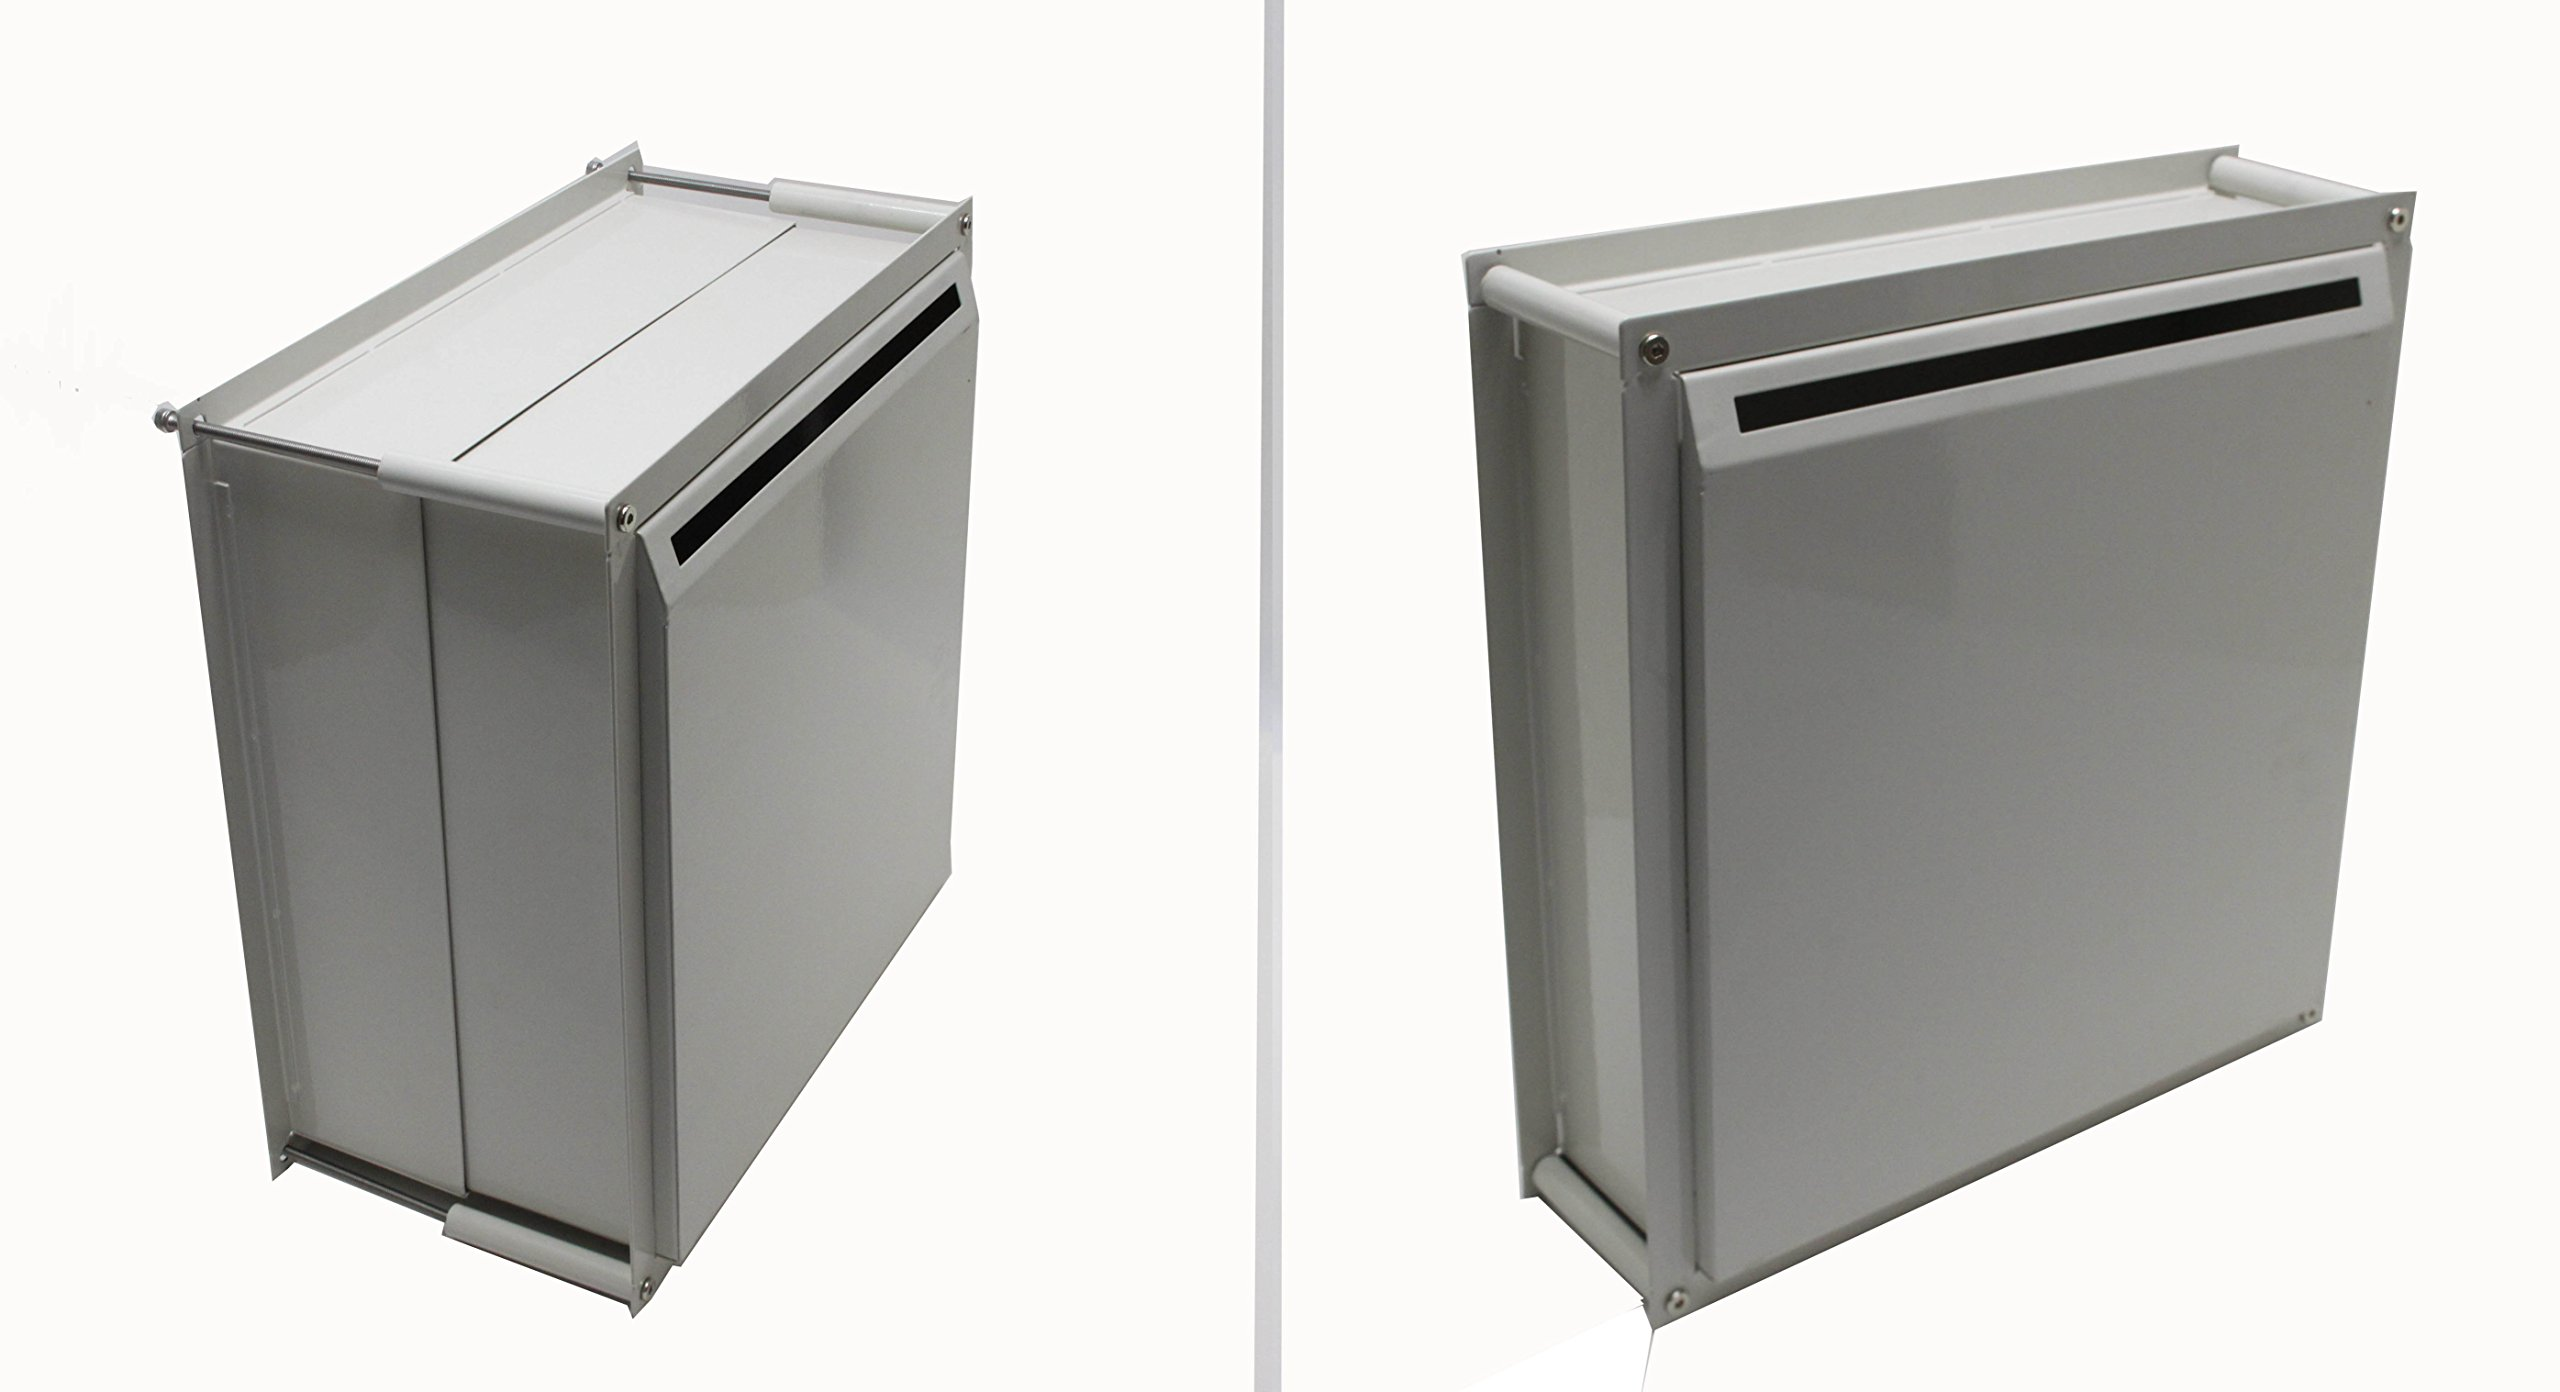 FixtureDisplays Adjustable Thickness Through-The-Wall Letter/Payment Locking Drop Box for 4'' - 8'' Wall 15958